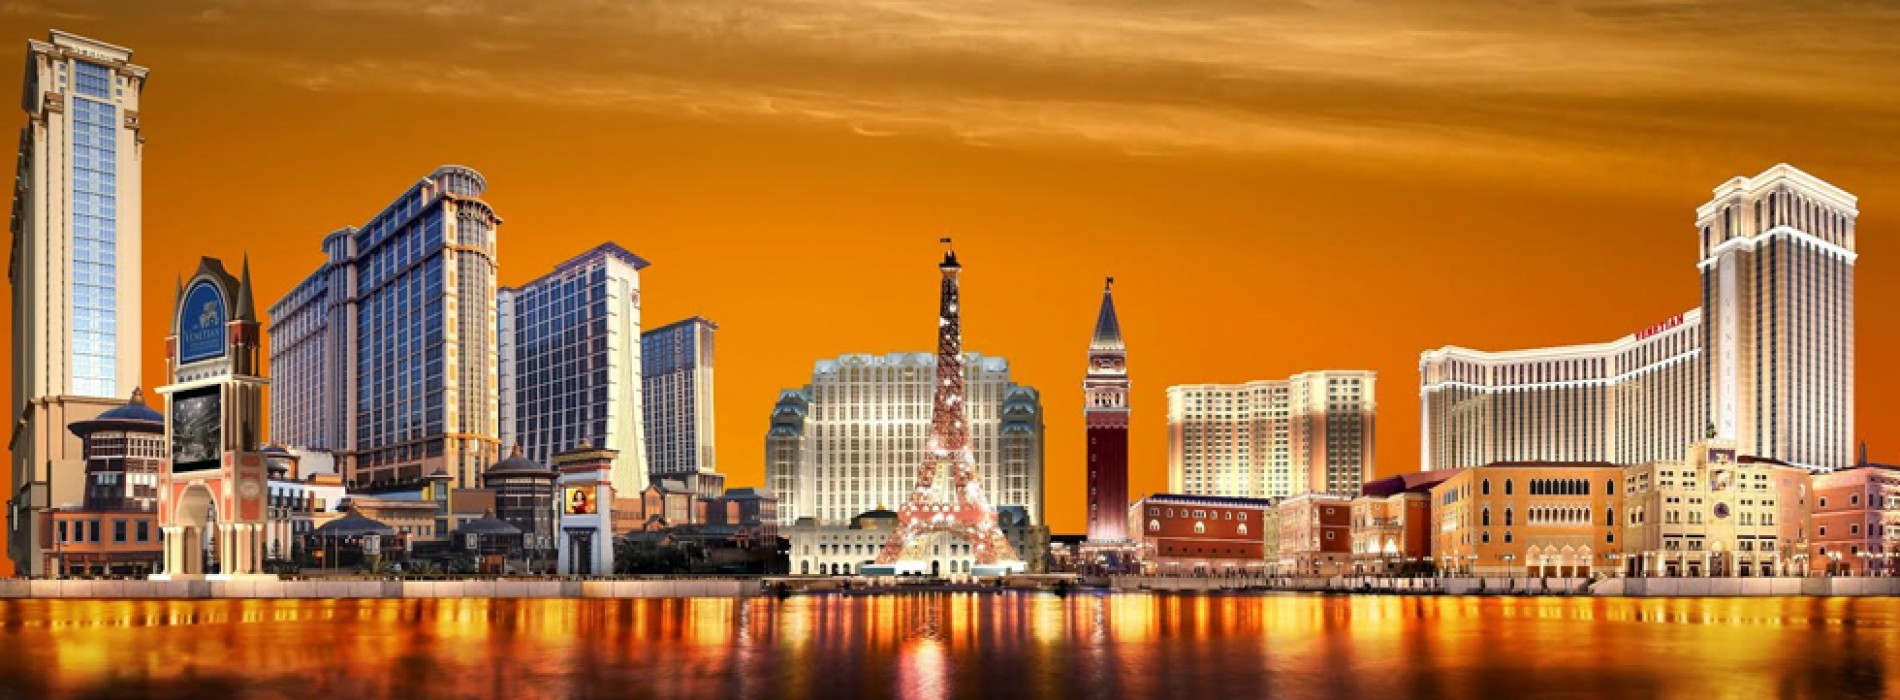 Sands Resorts Cotai Strip Macao properties take three of Macao's seven places in prestigious 'China's Top 100 Hotels' Awards